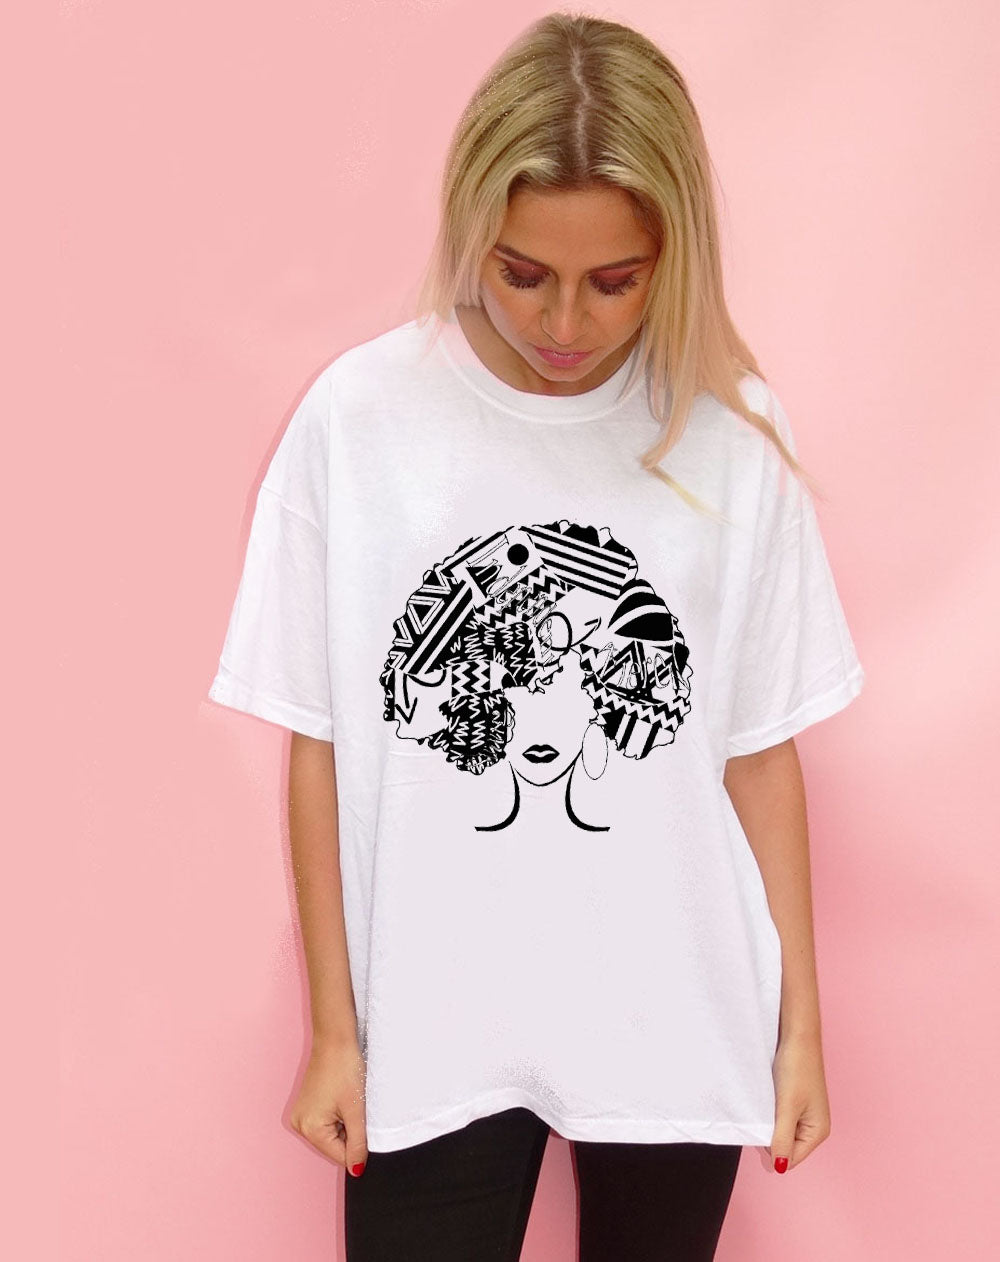 Graphic Fro T-shirt in White